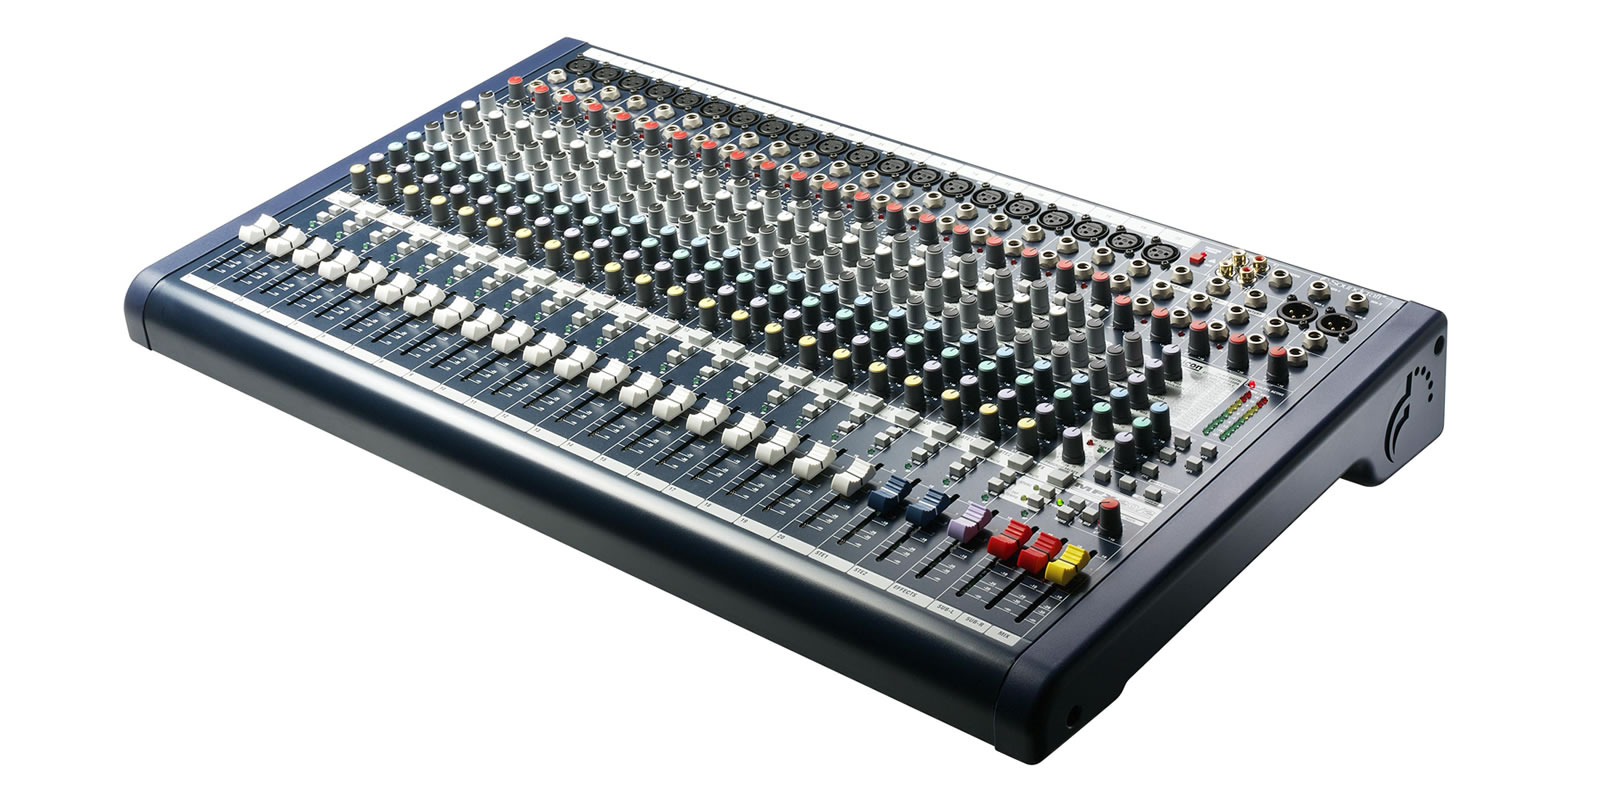 Mfxi Soundcraft Professional Audio Mixers Mic Mixer Circuit Discontinued